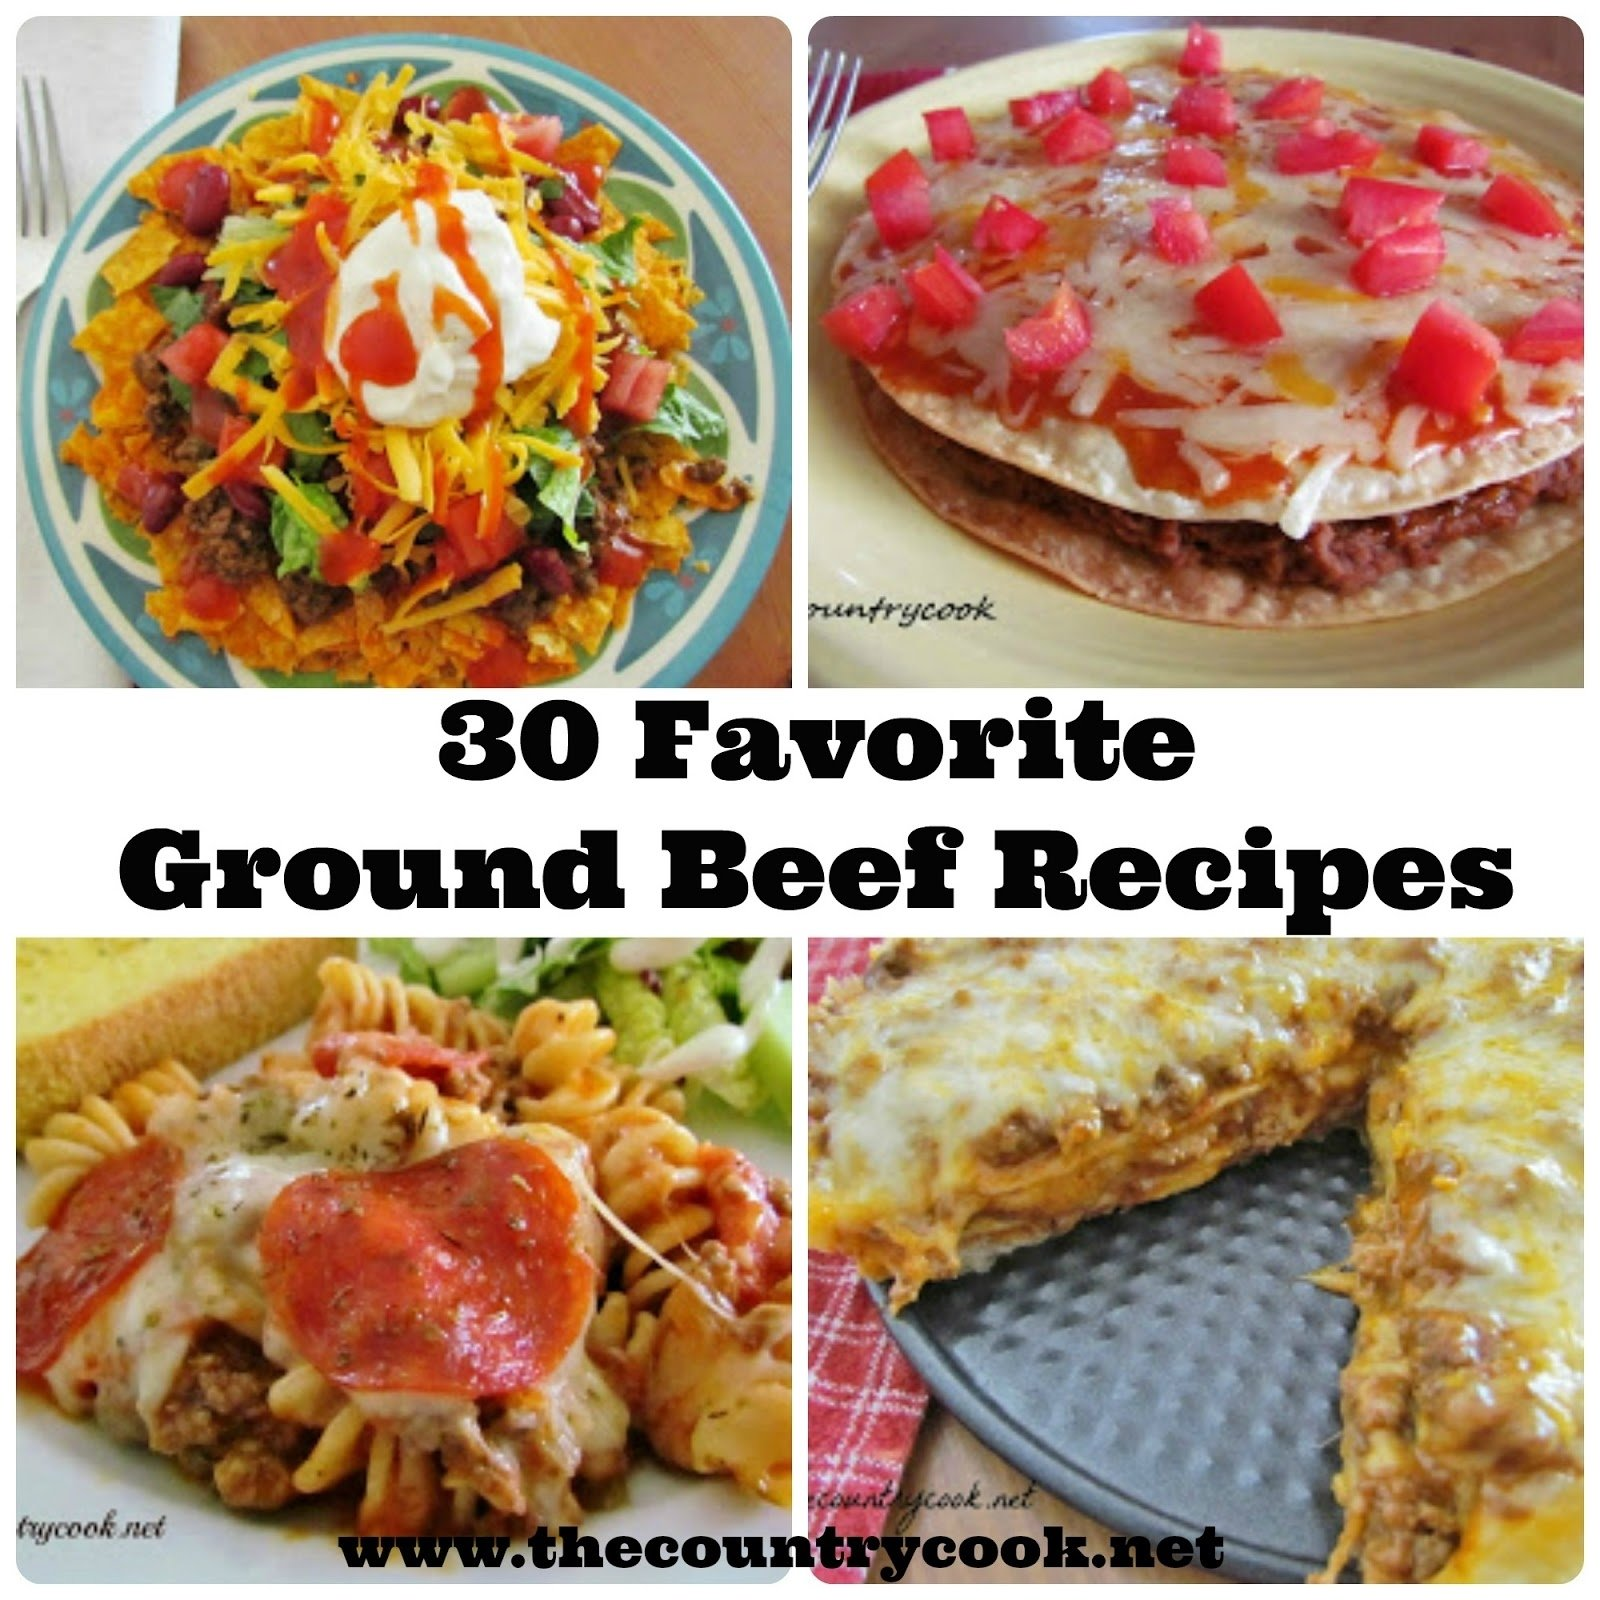 10 Famous Dinner Ideas With Ground Beef 30 favorite ground beef recipes the country cook 6 2021